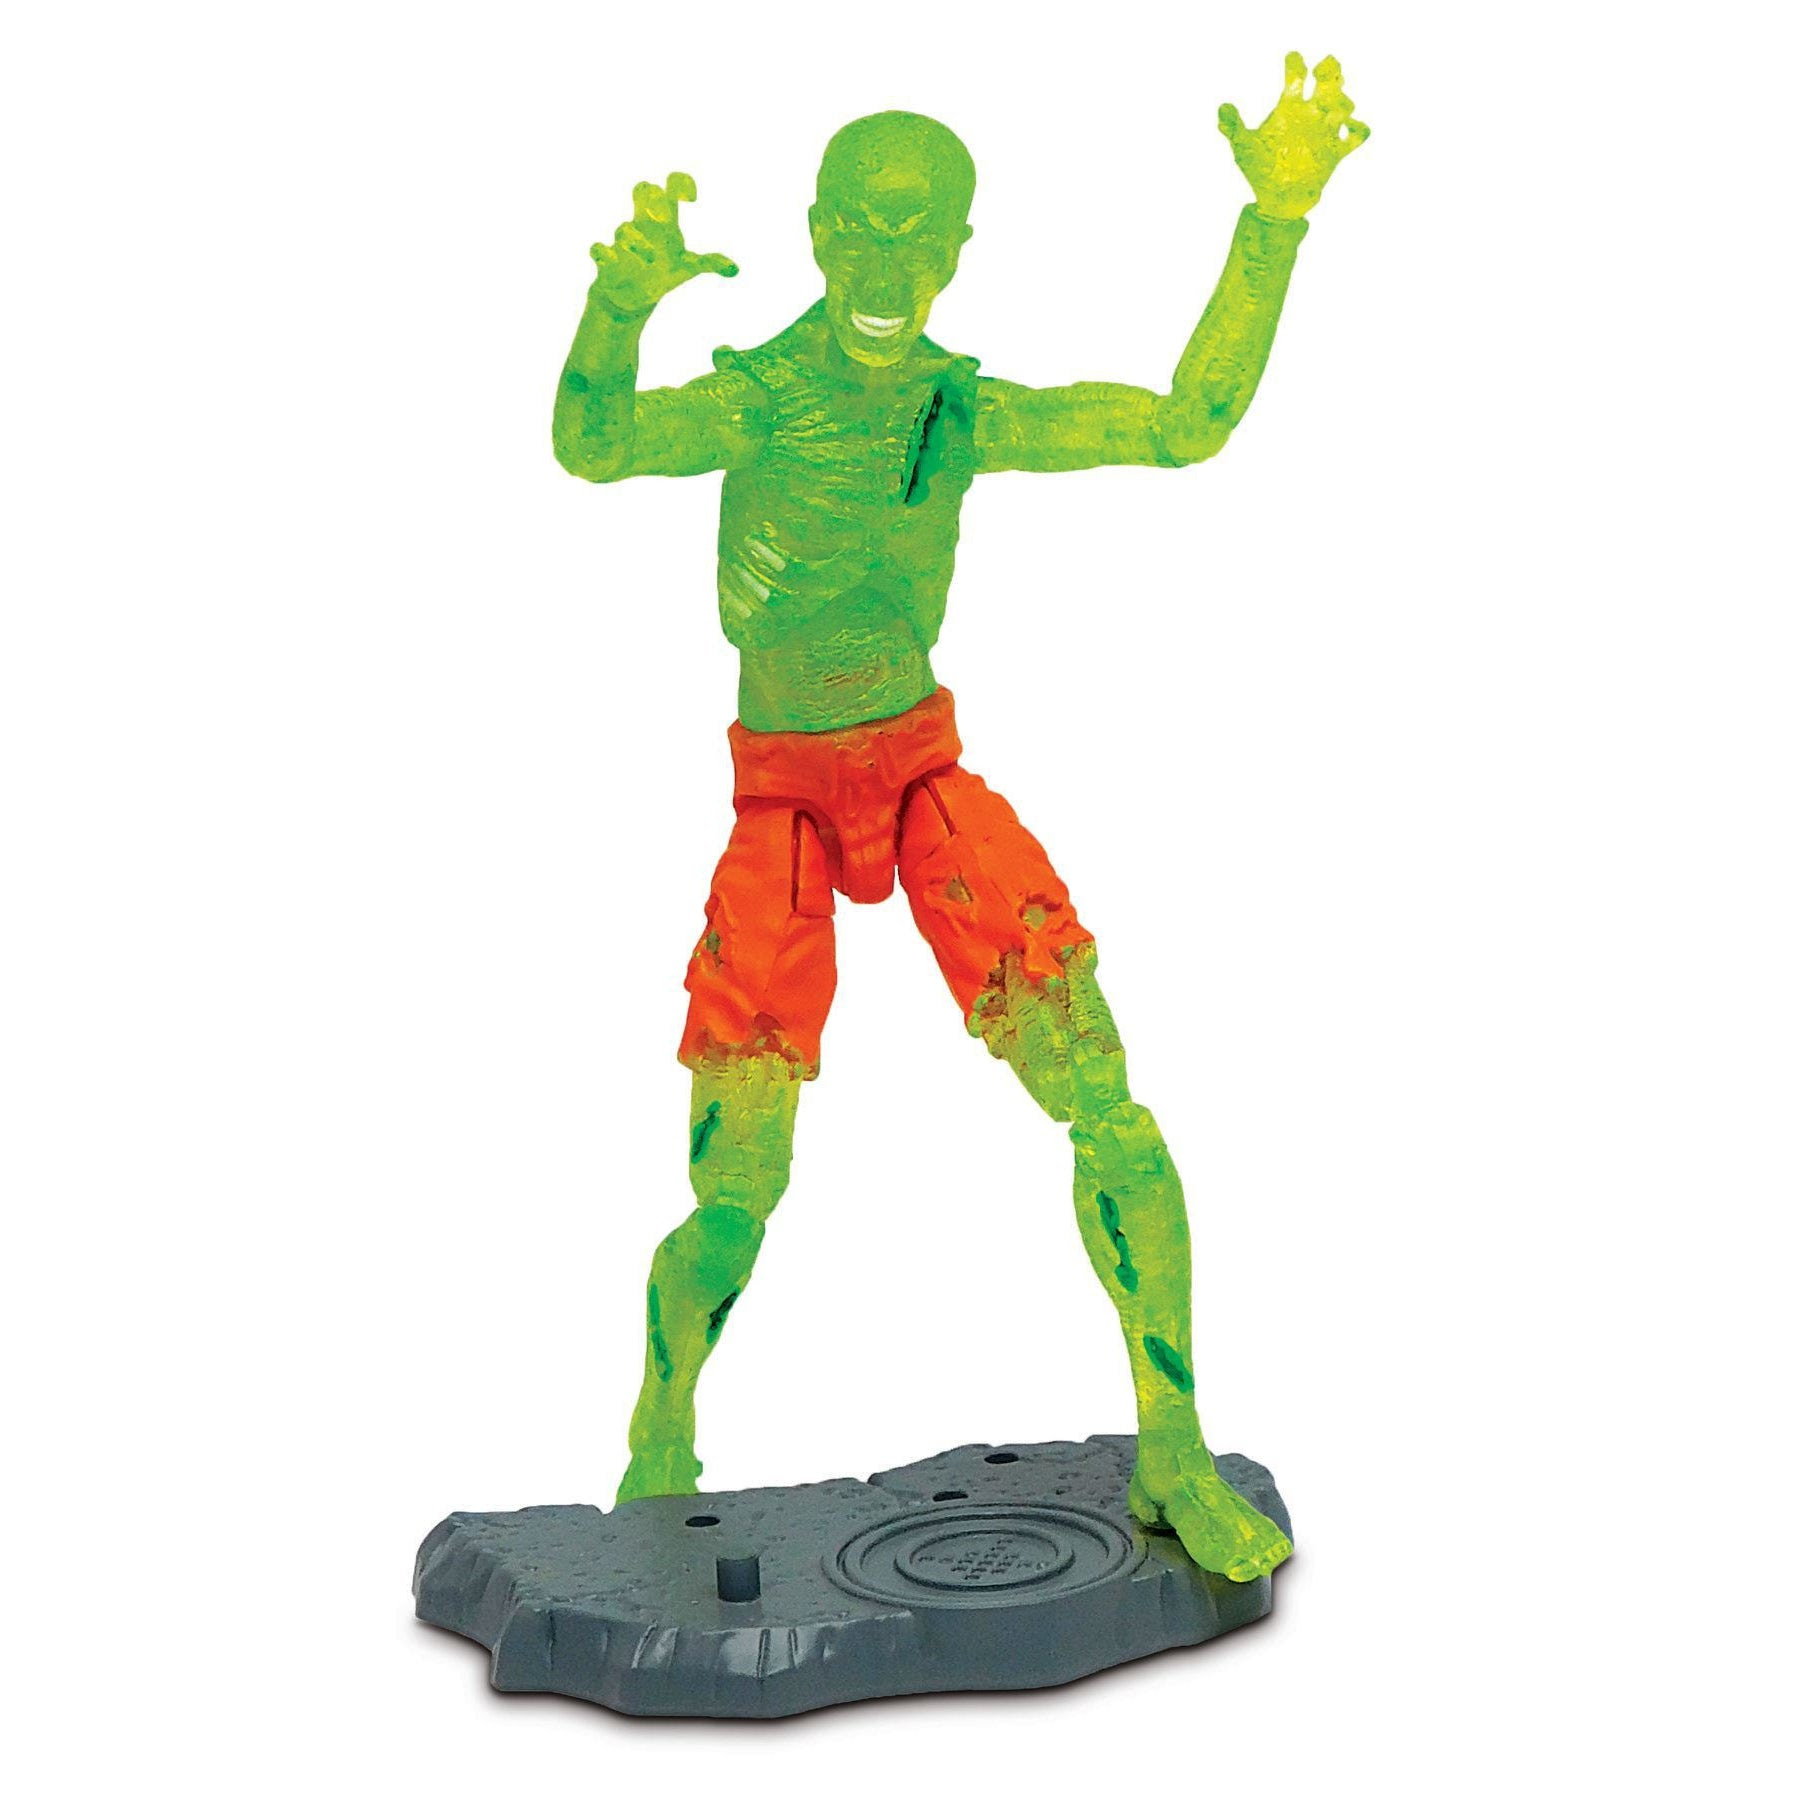 Image of Vitruvian H.A.C.K.S. Irradiated Zombie Figure